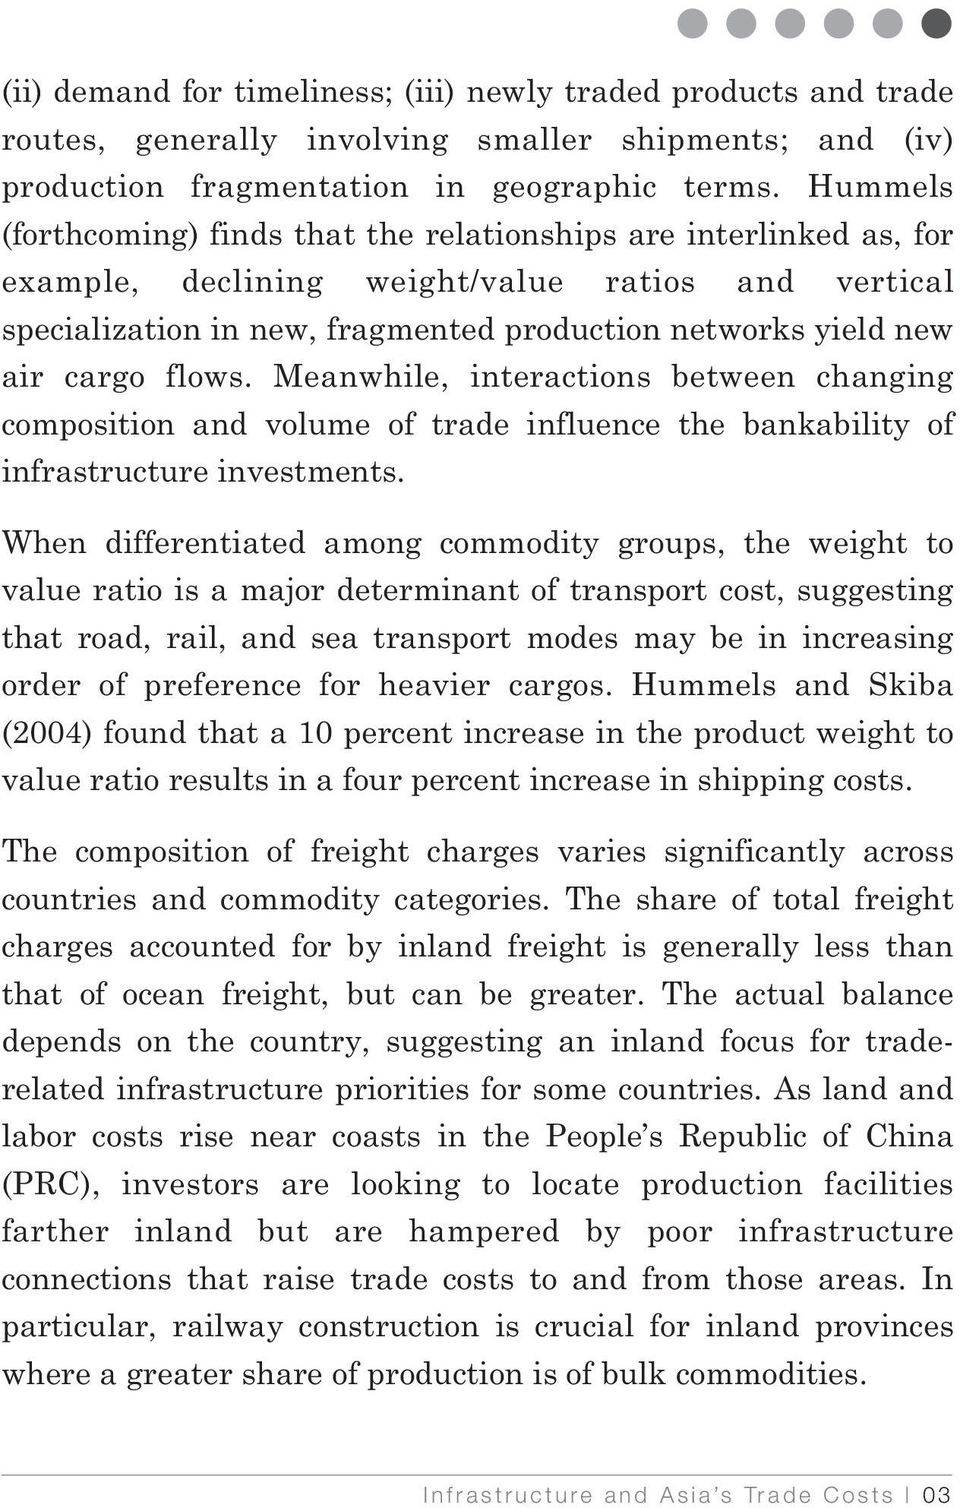 cargo flows. Meanwhile, interactions between changing composition and volume of trade influence the bankability of infrastructure investments.